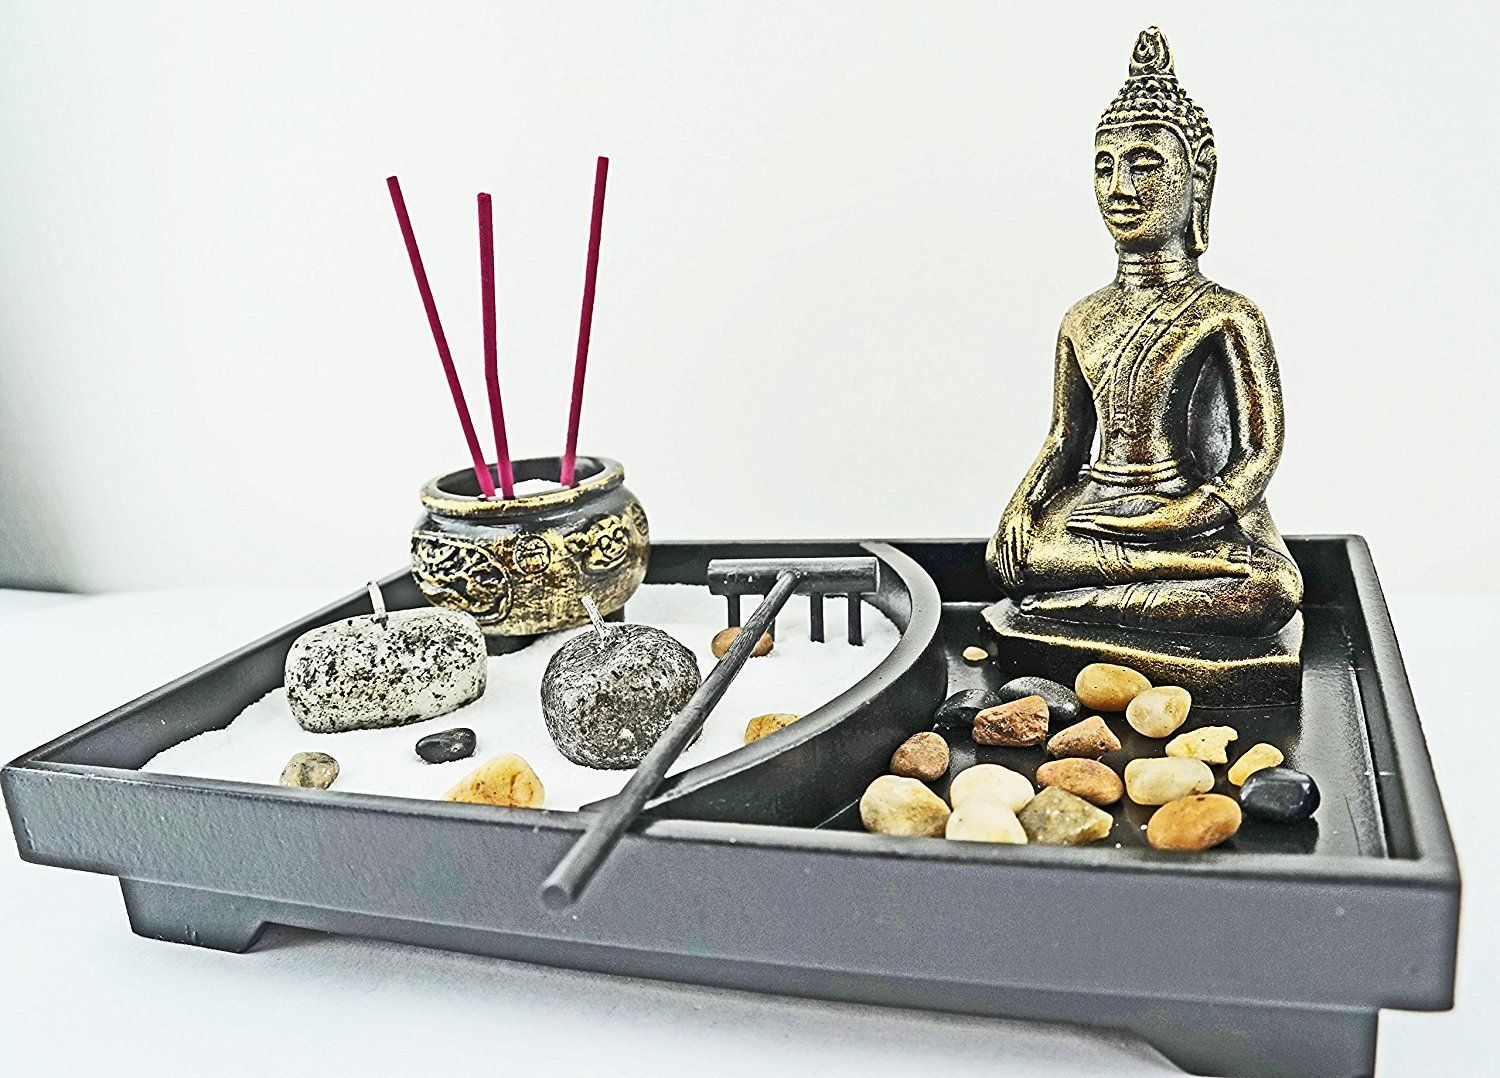 Tabletop incense burner gifts and decor zen garden kit with statue